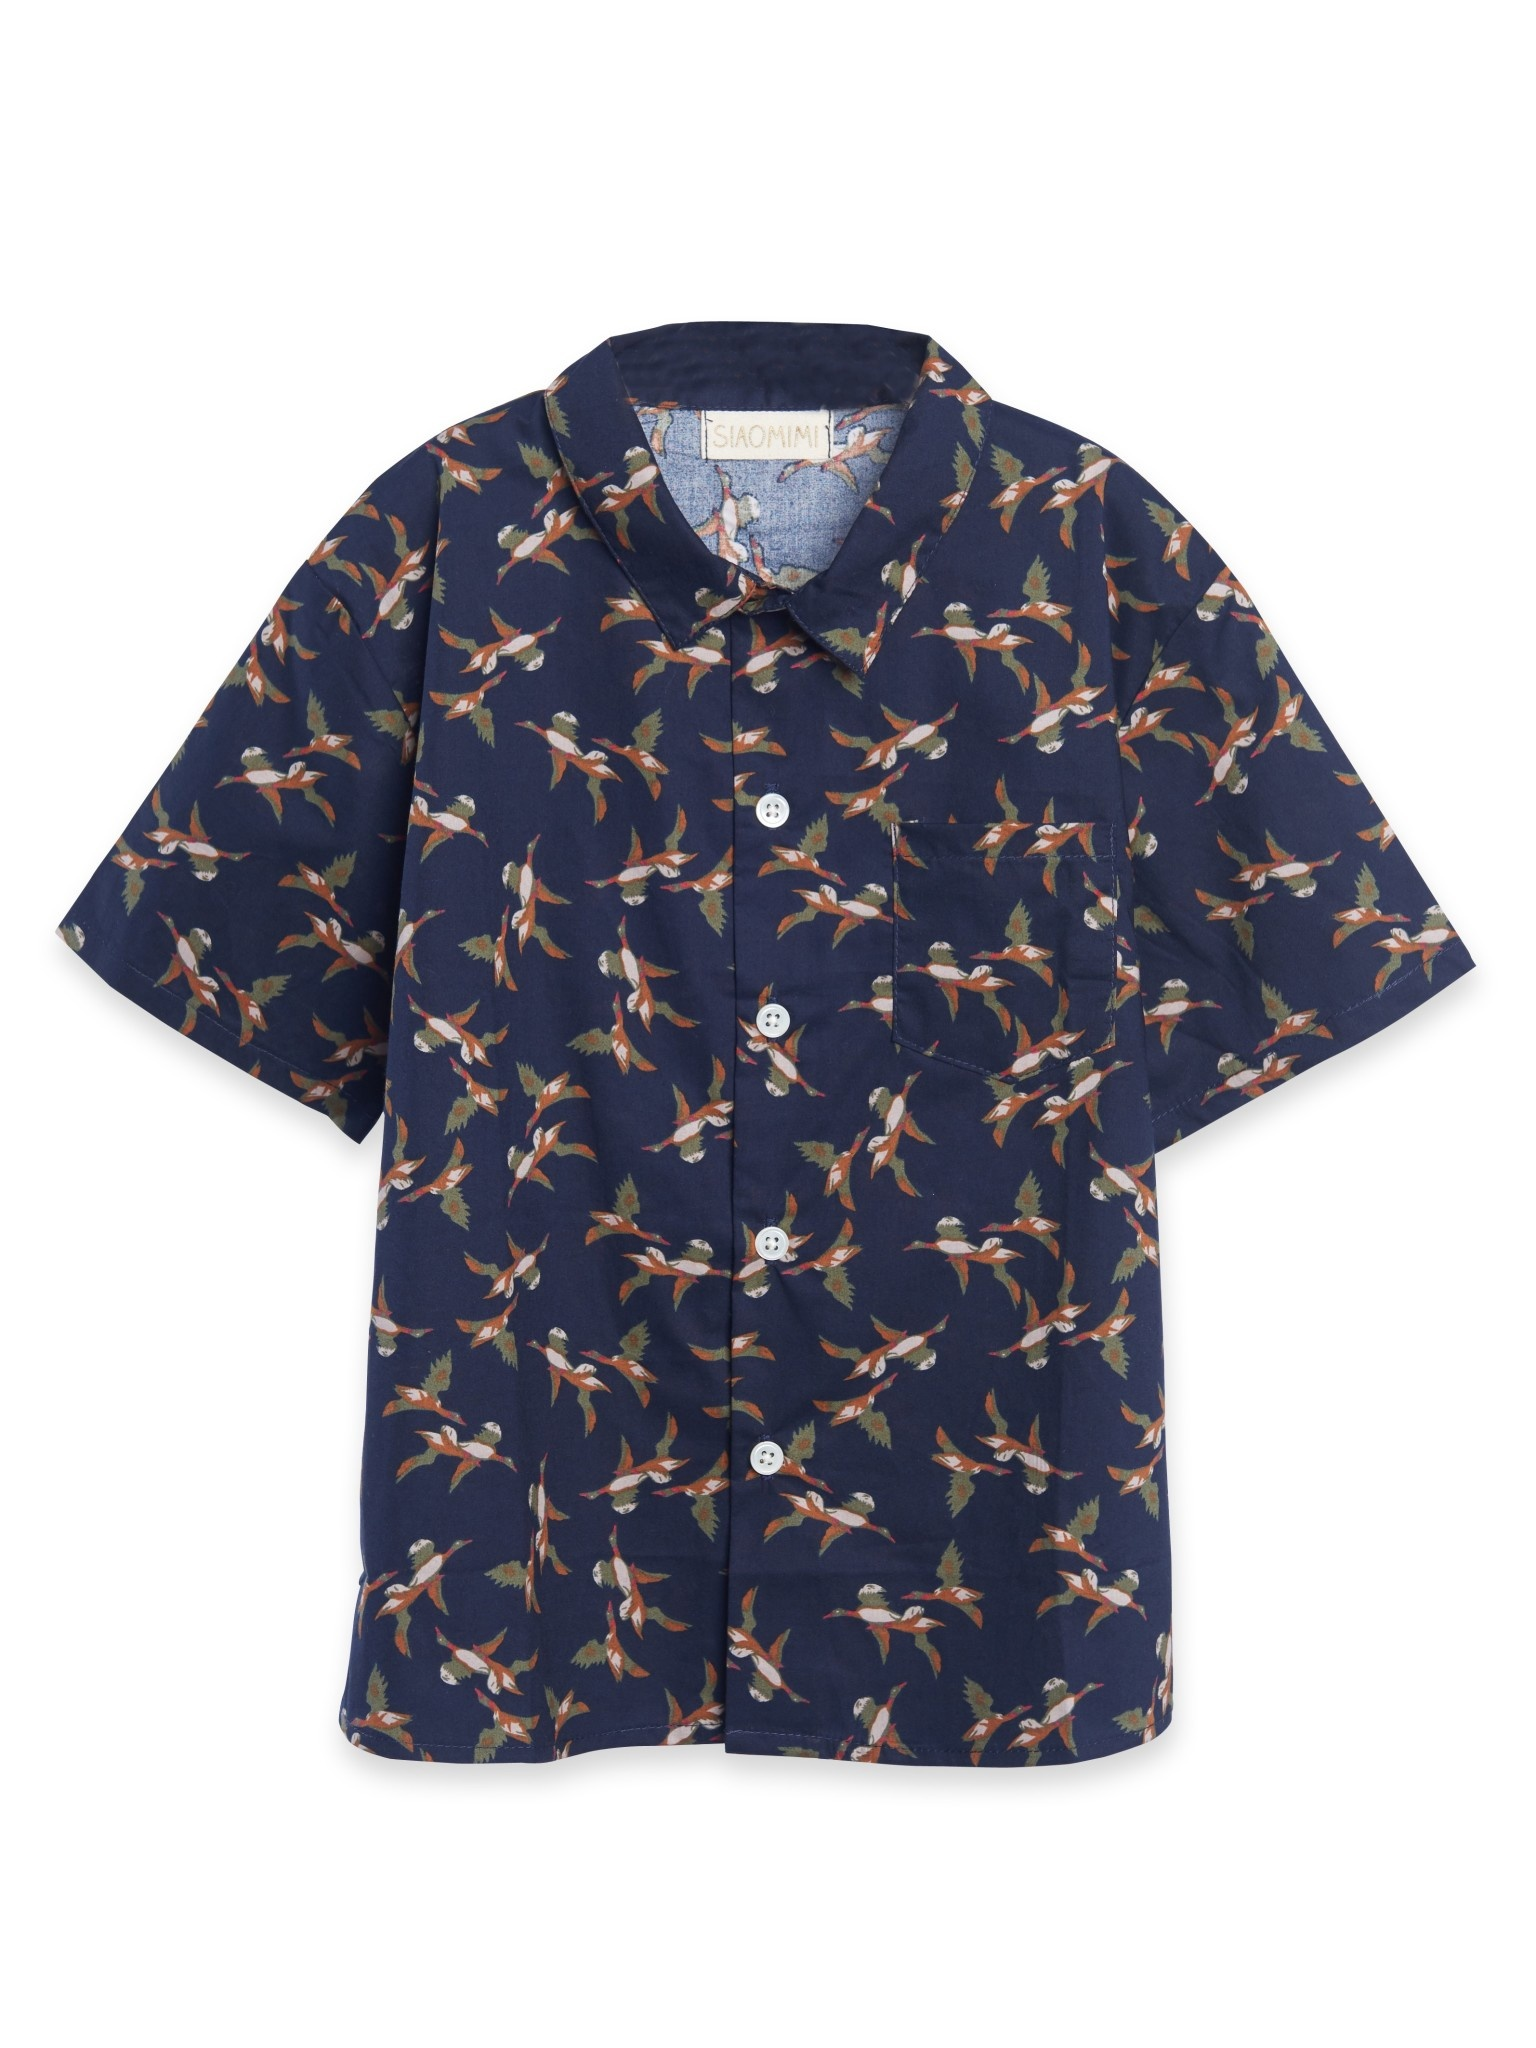 Siaomimi Bird Shirt